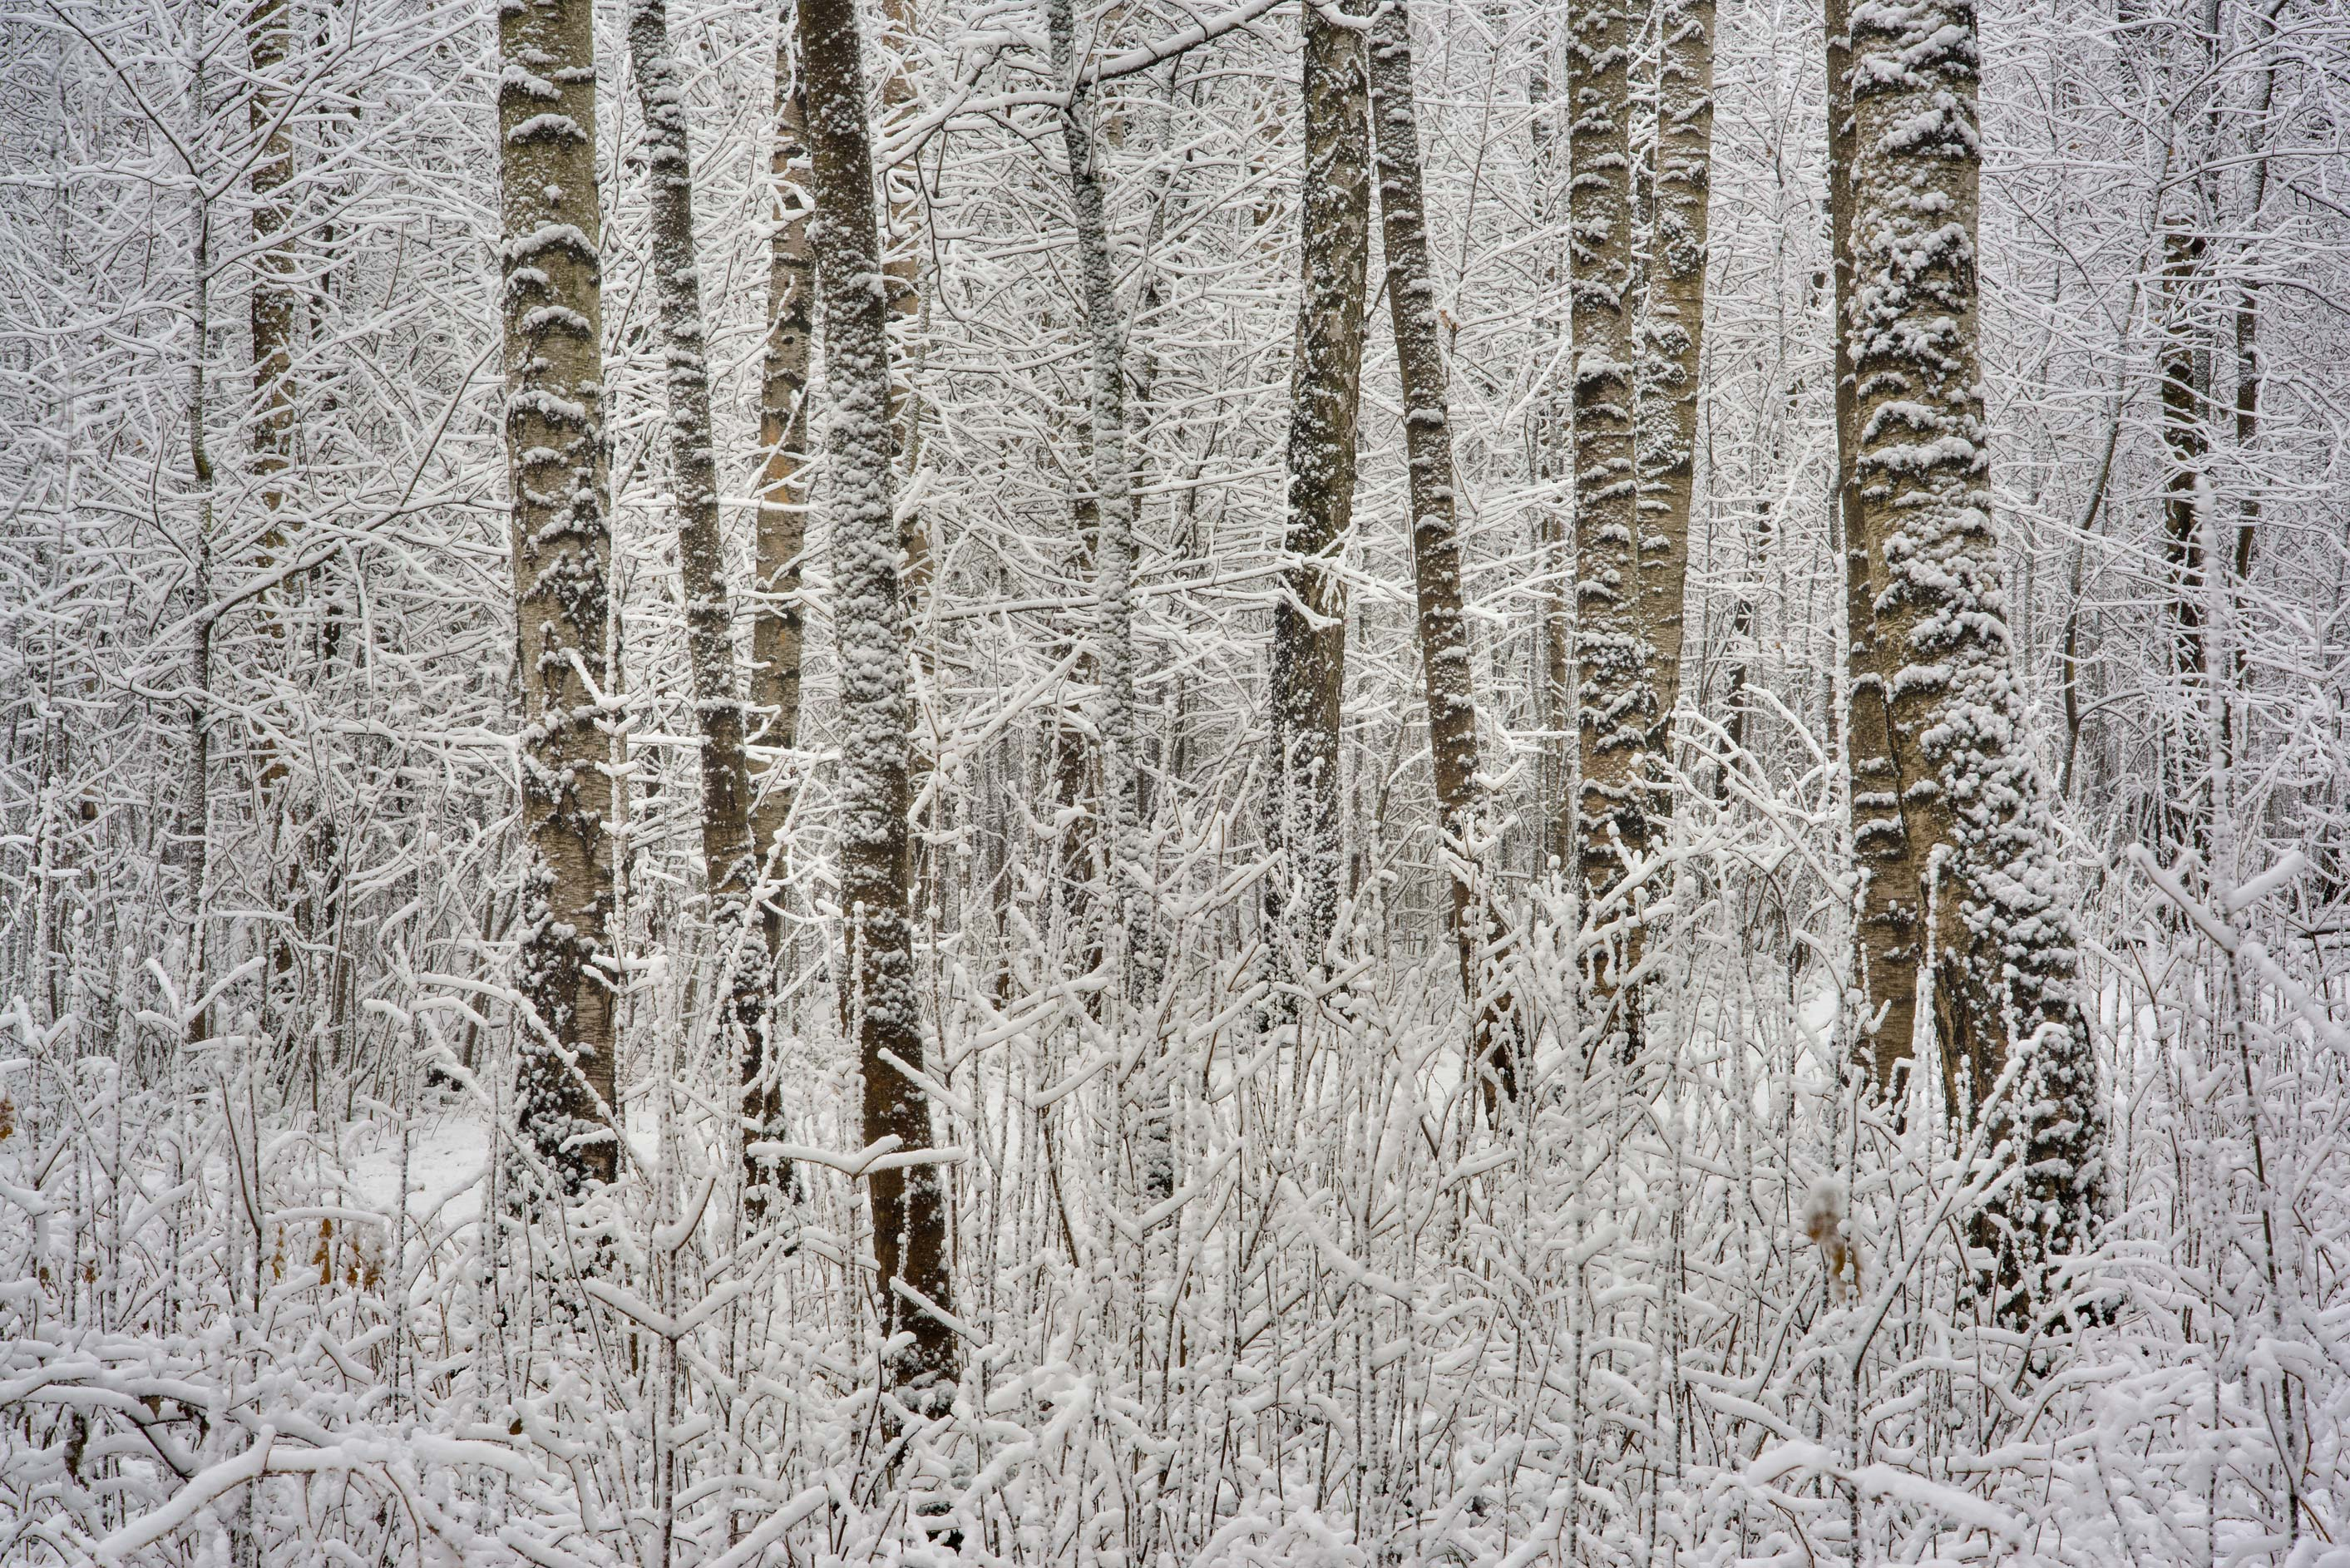 Birch trees in fresh snow in Sosnovka Park. St.Petersburg, Russia